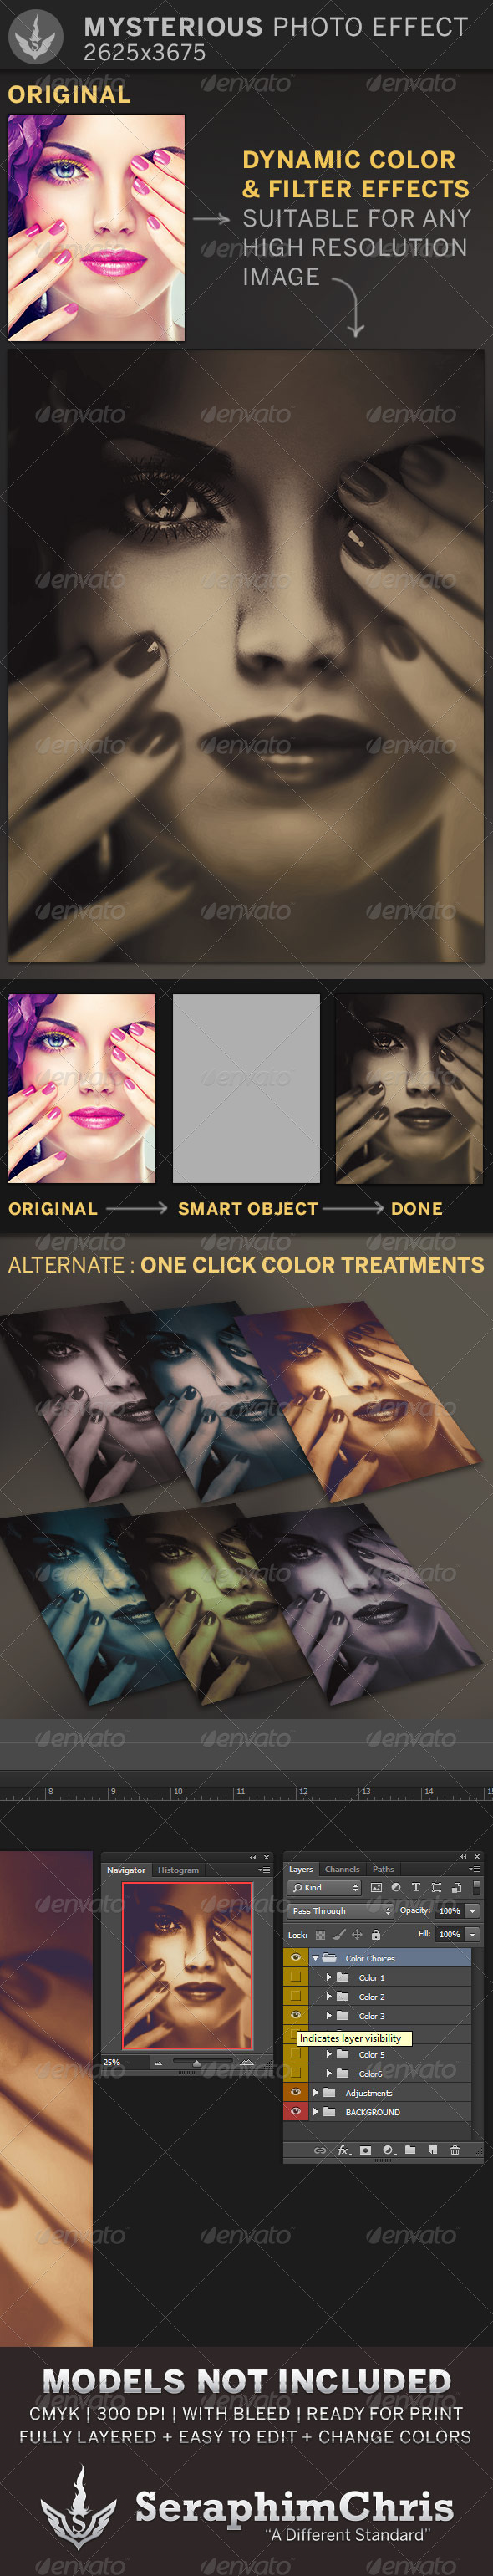 Mysterious Photo Effect Template - Photo Templates Graphics